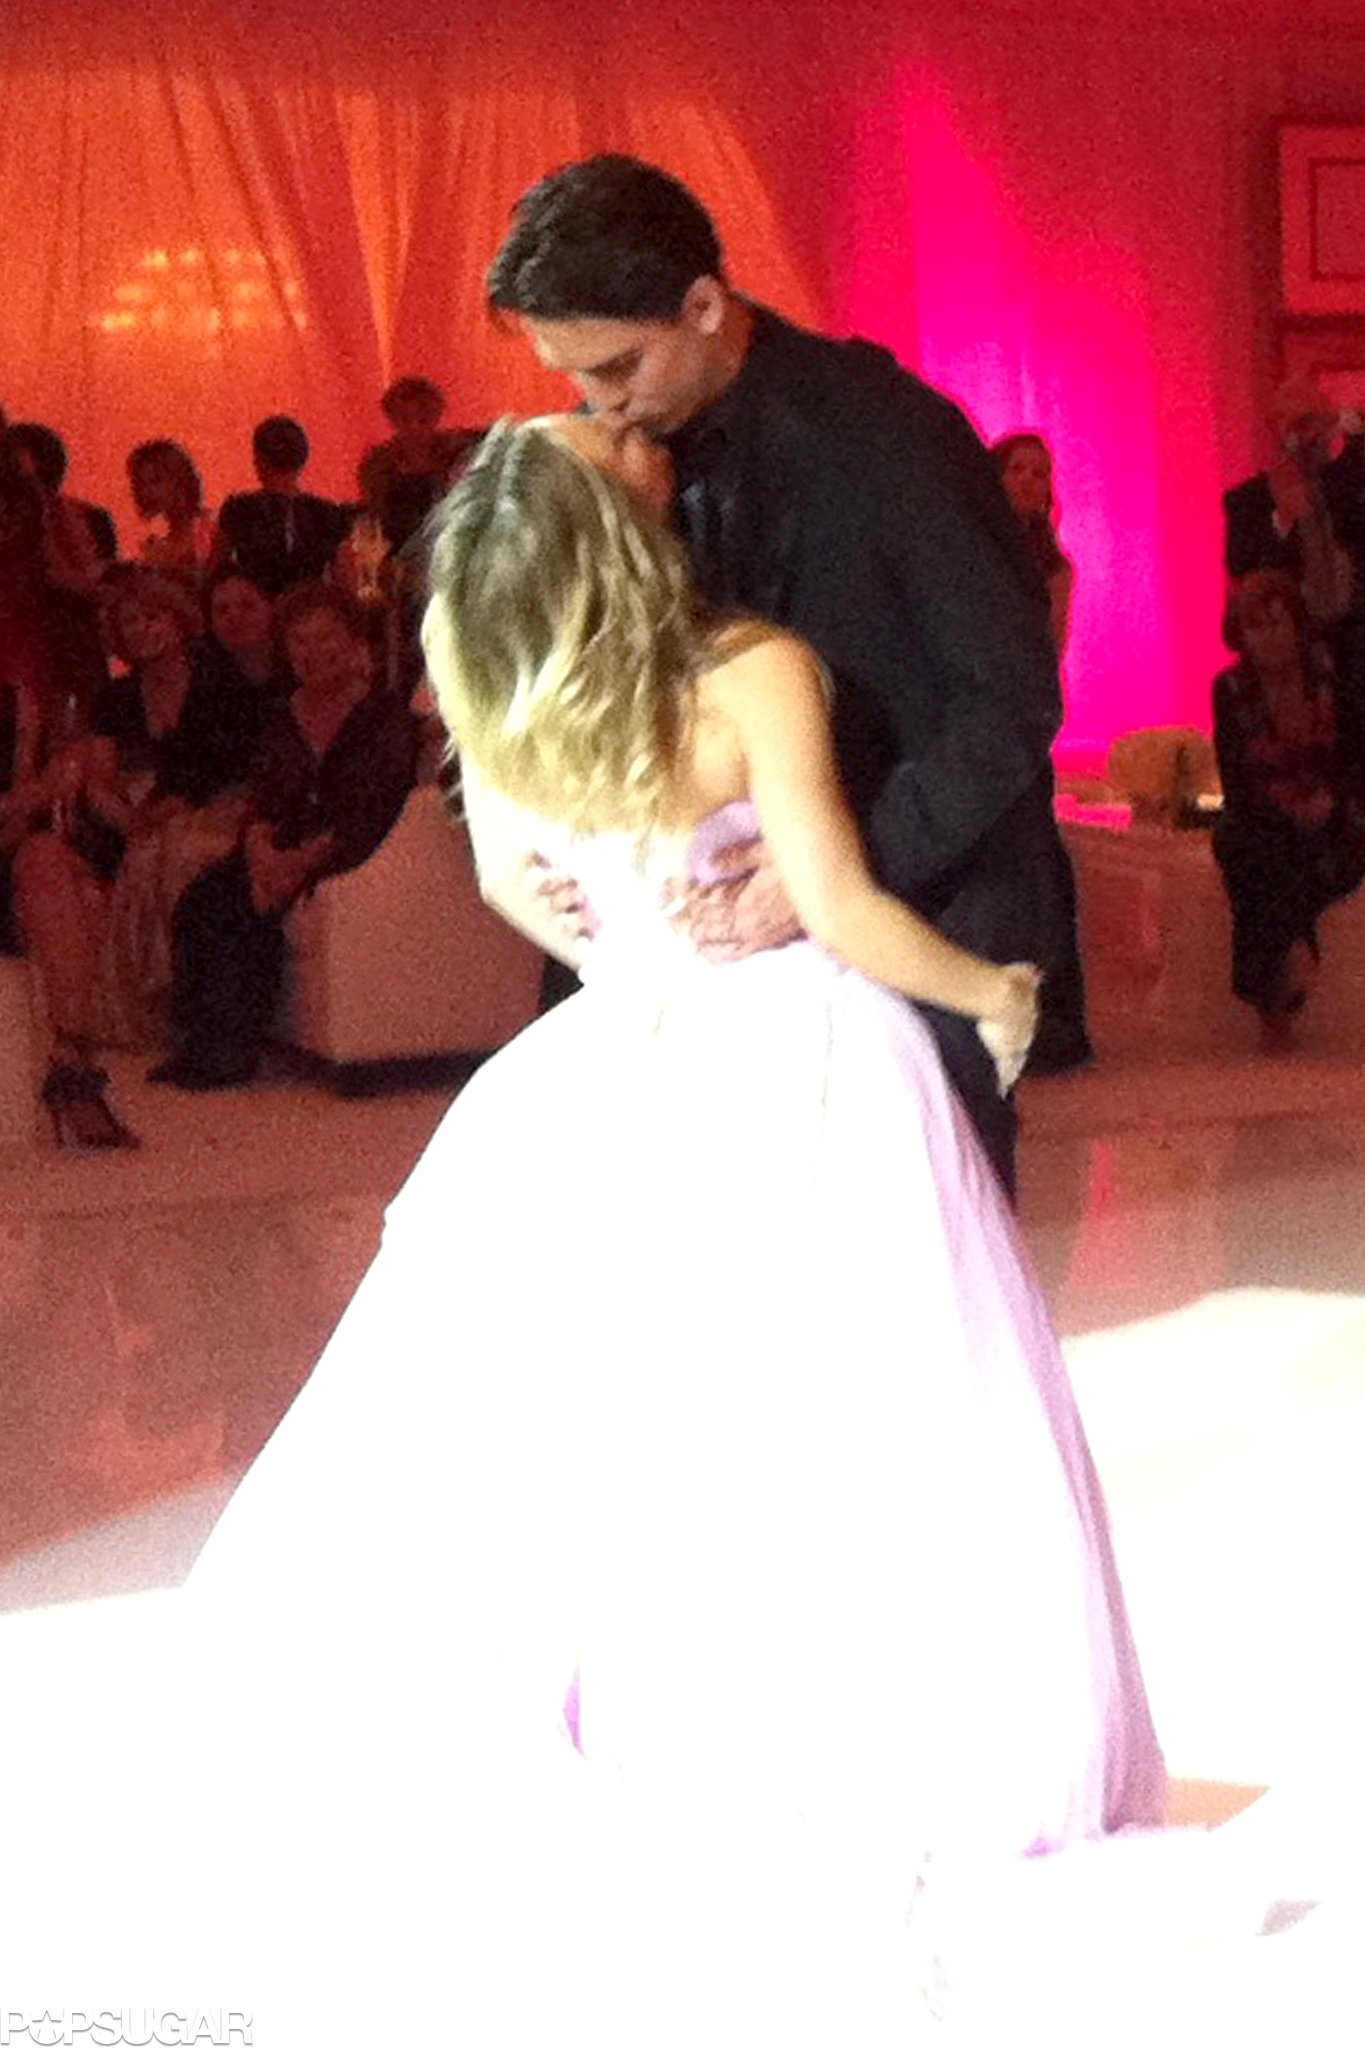 Kaley Cuoco and Ryan Sweeting brought on the PDA during their wedding on Tuesday night.